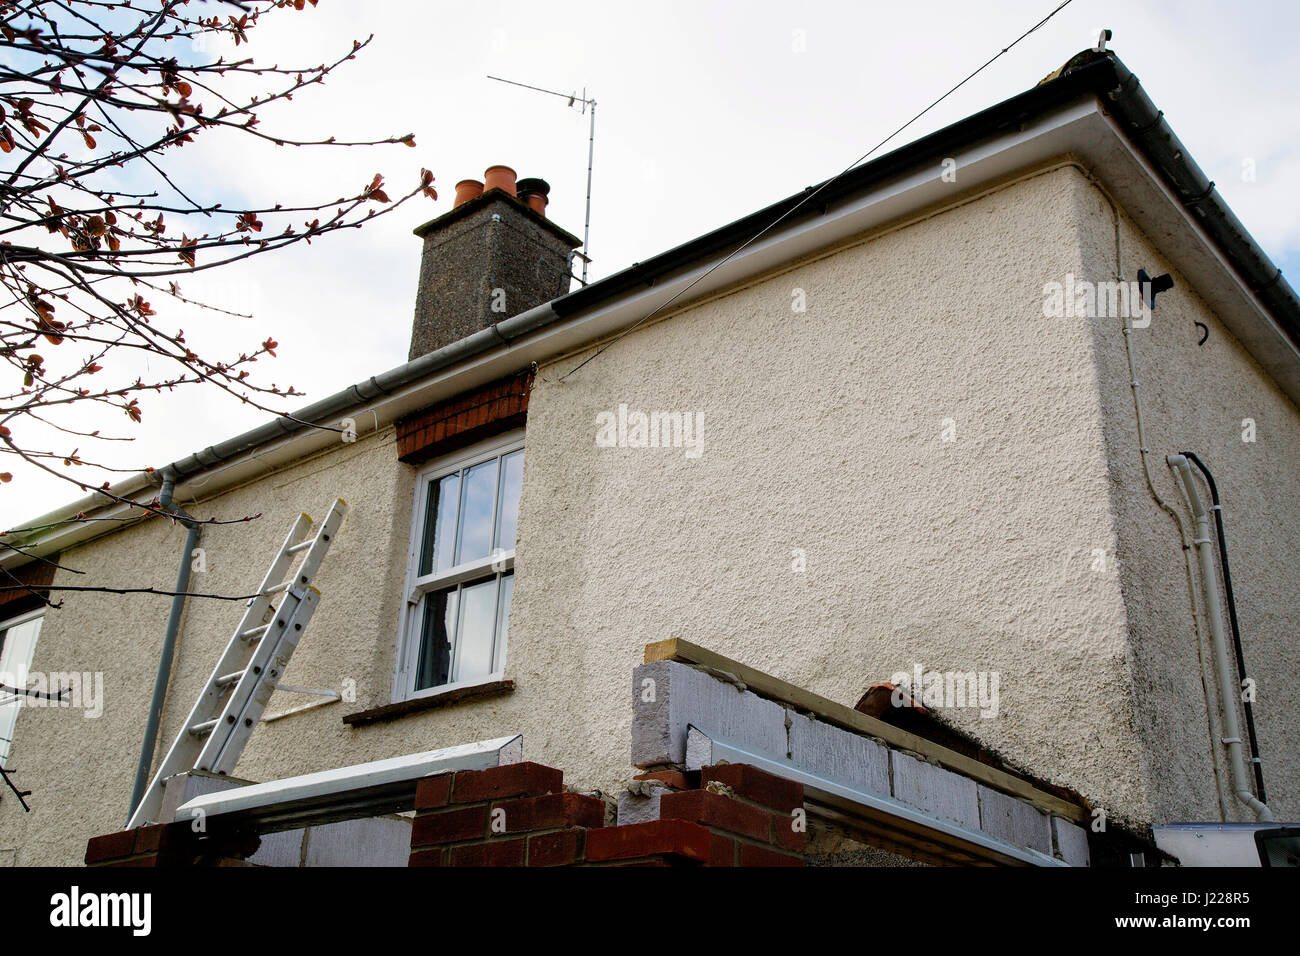 Refurbishment work in progress on a semi-detached house with rendered frontage and part-built porch. A ladder leans - Stock Image